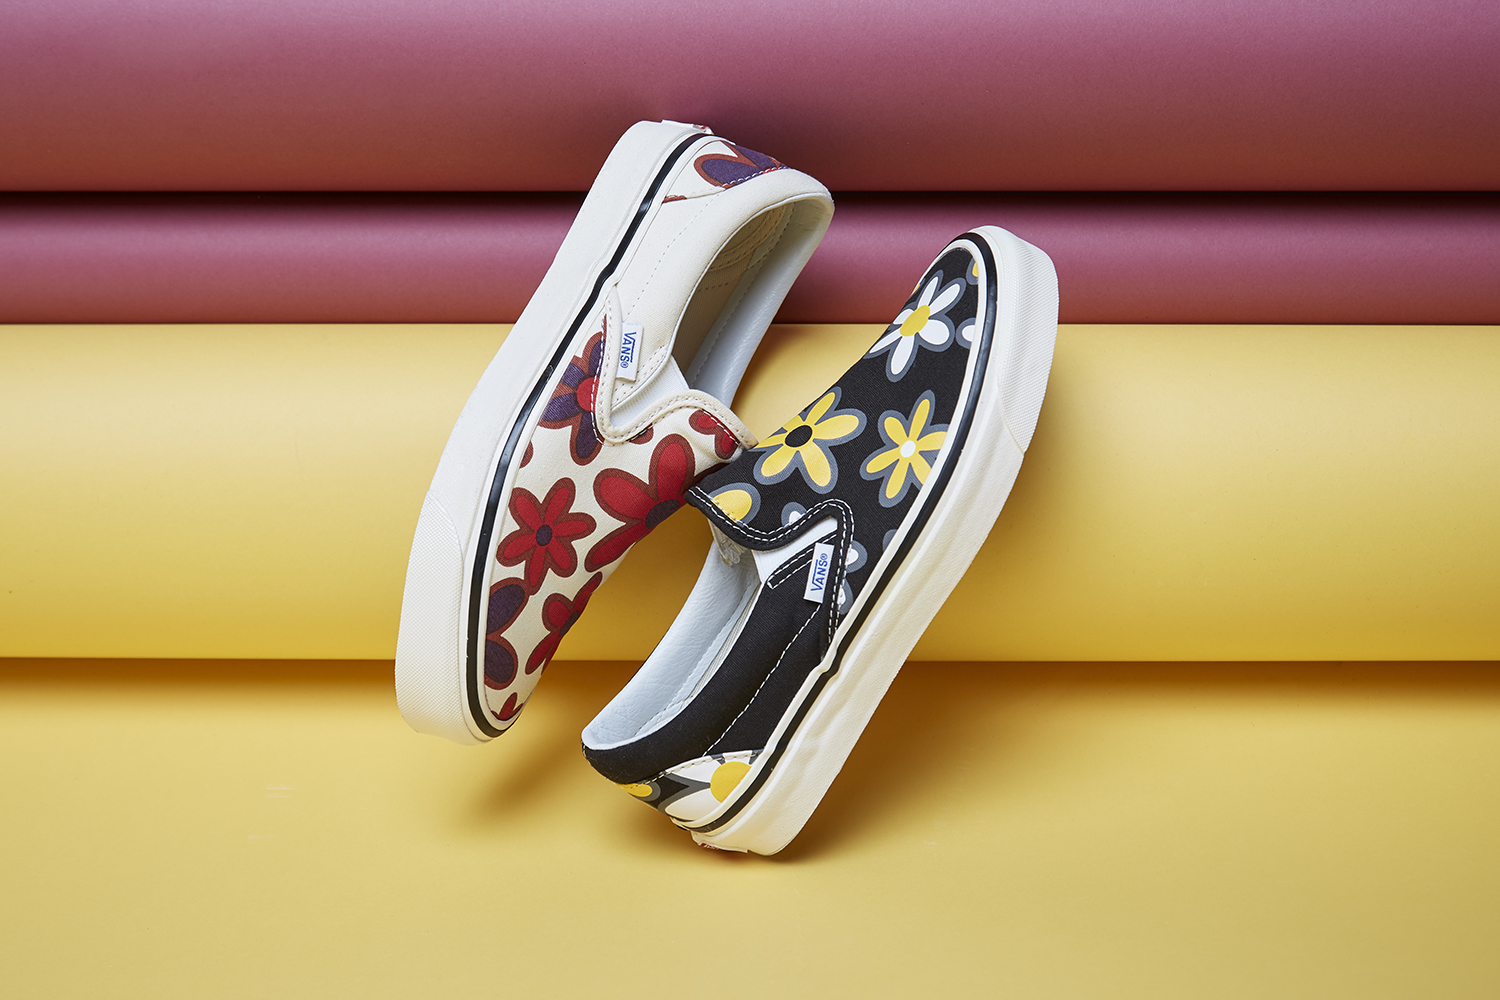 Vans Slip-On 98 DX 'Floral'